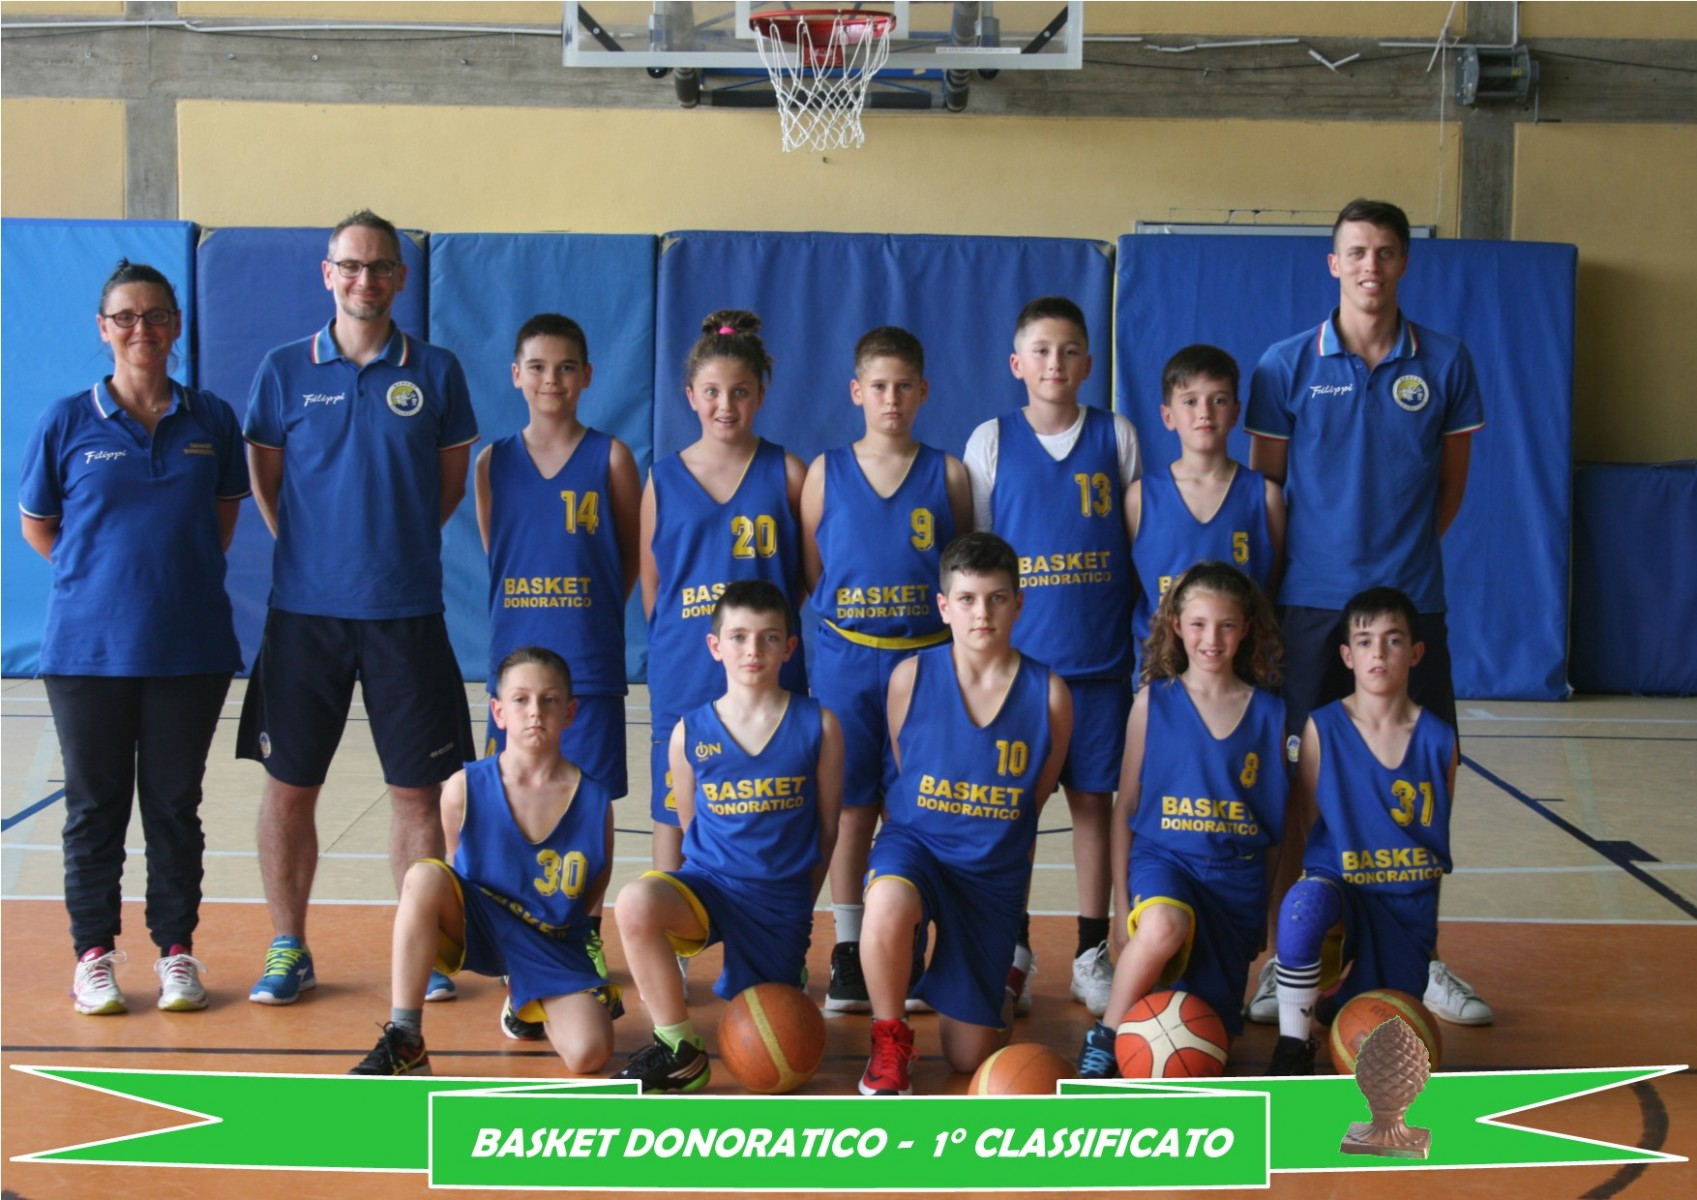 Basket-Donoratico